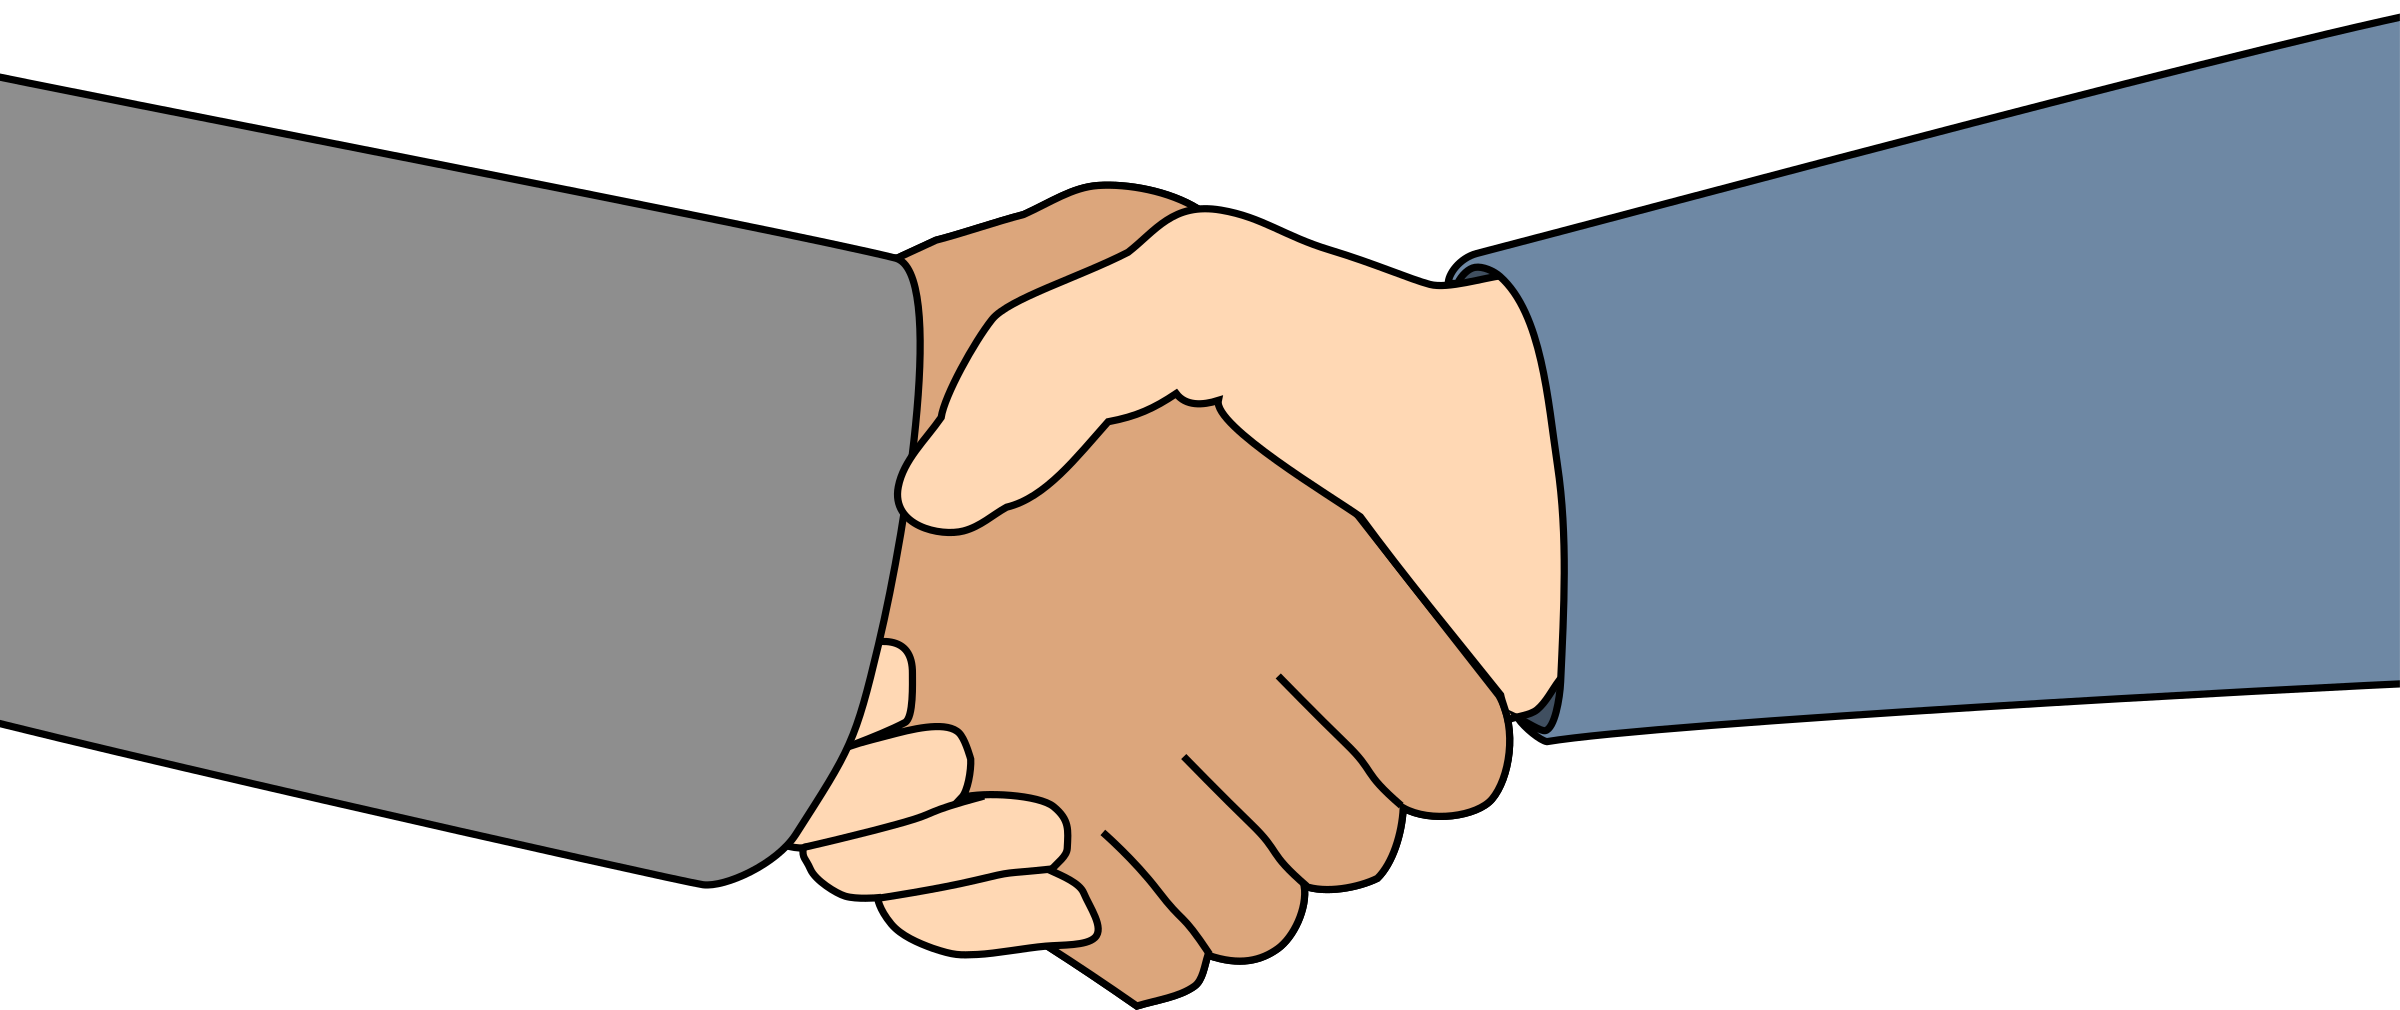 clipart library library Big image png. Handshake clipart